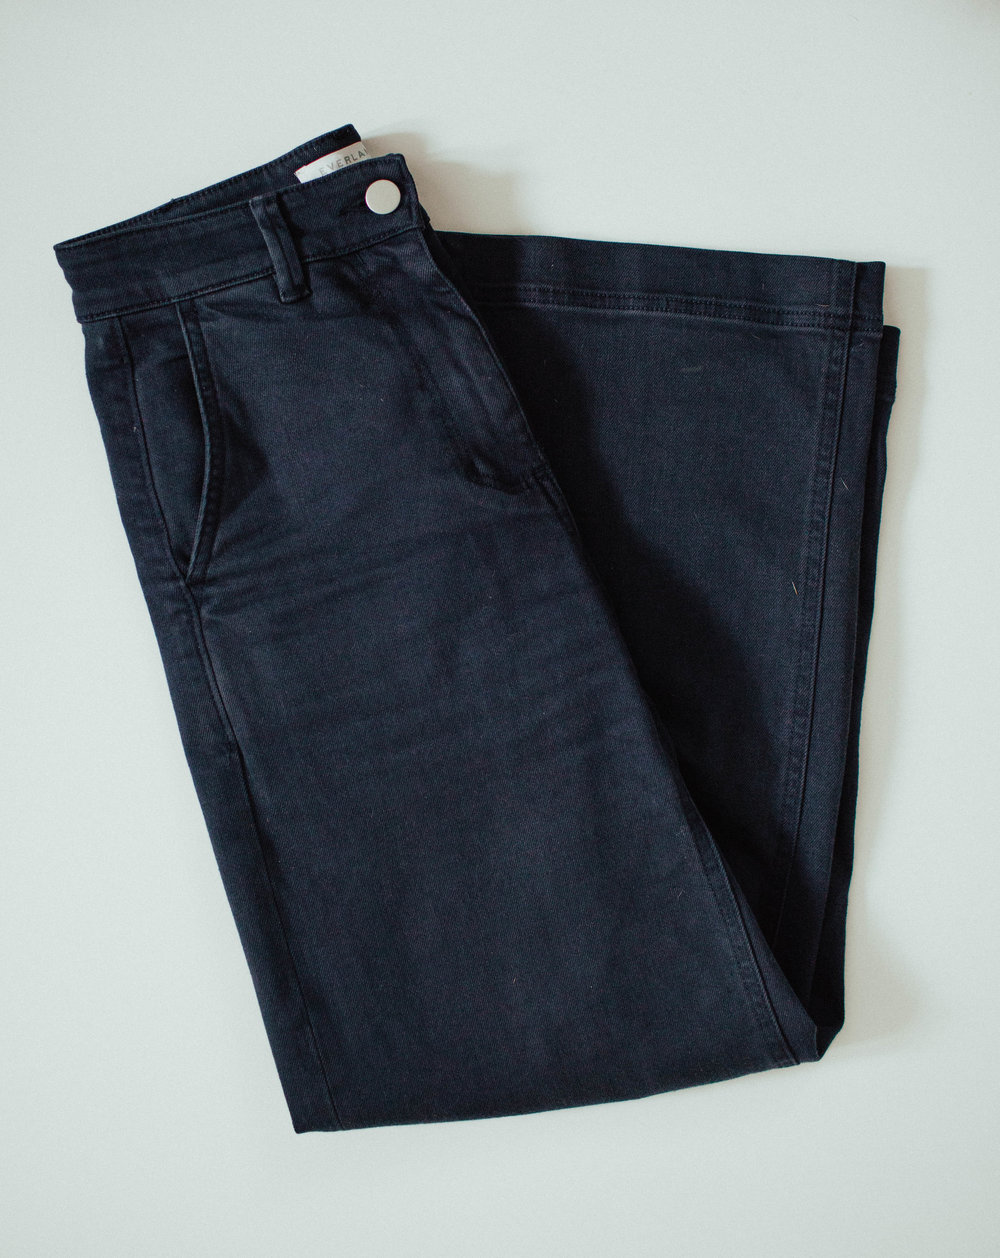 One of my most loved items of the year - the Everlane's Wide Leg Cropped Pant